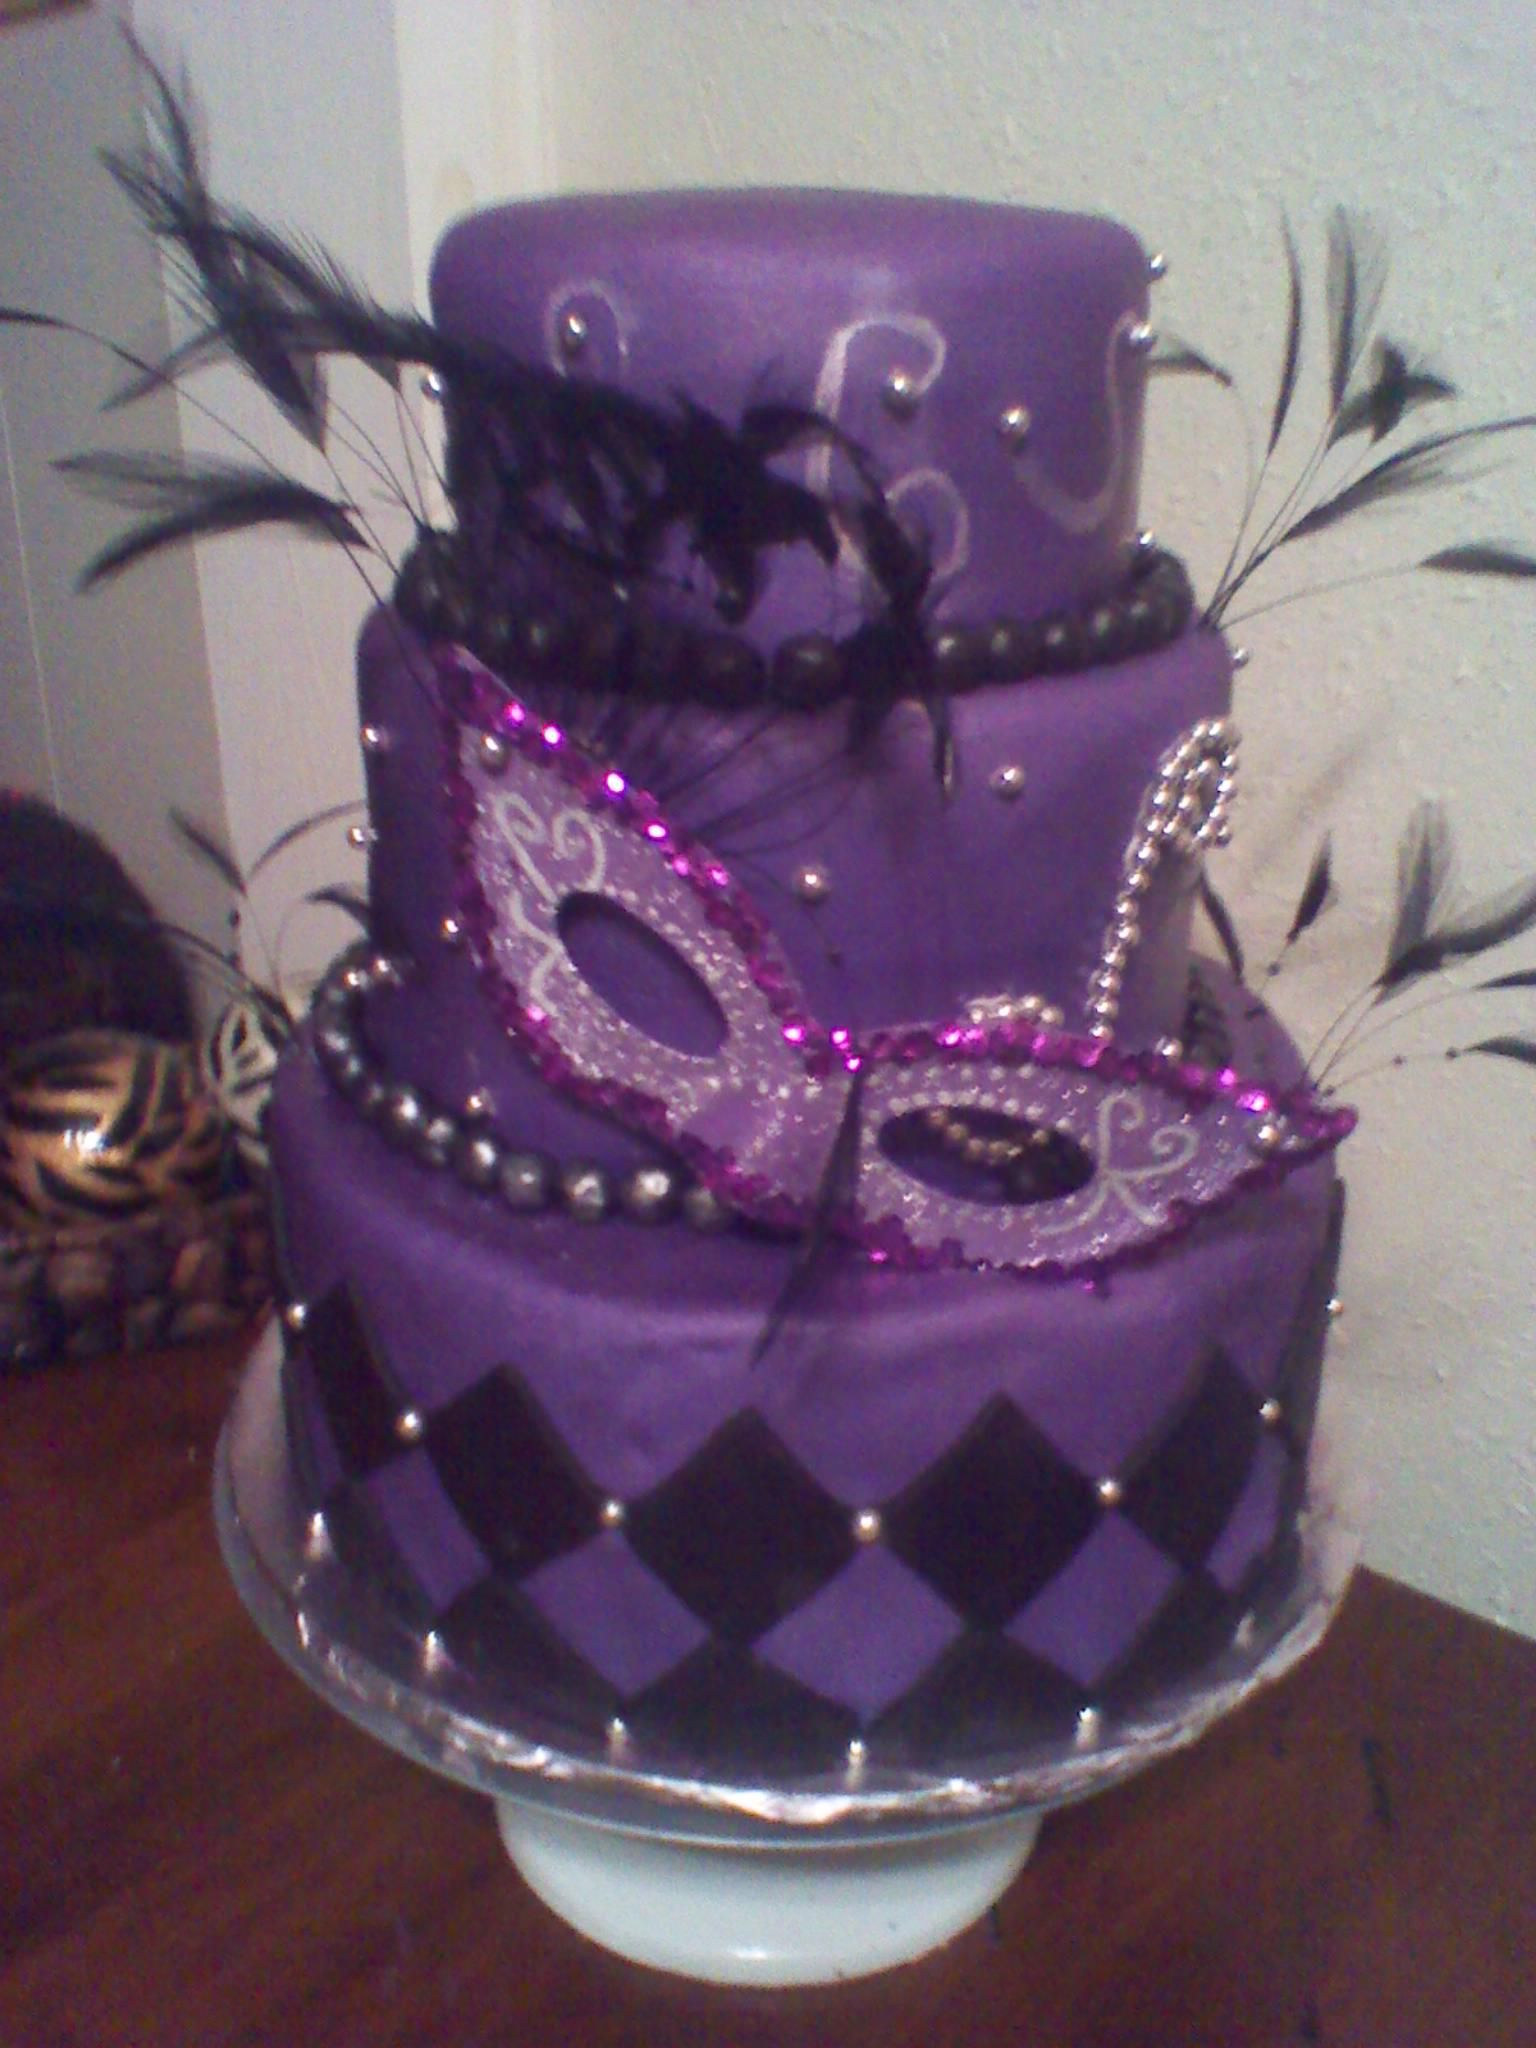 Another cake Ive done